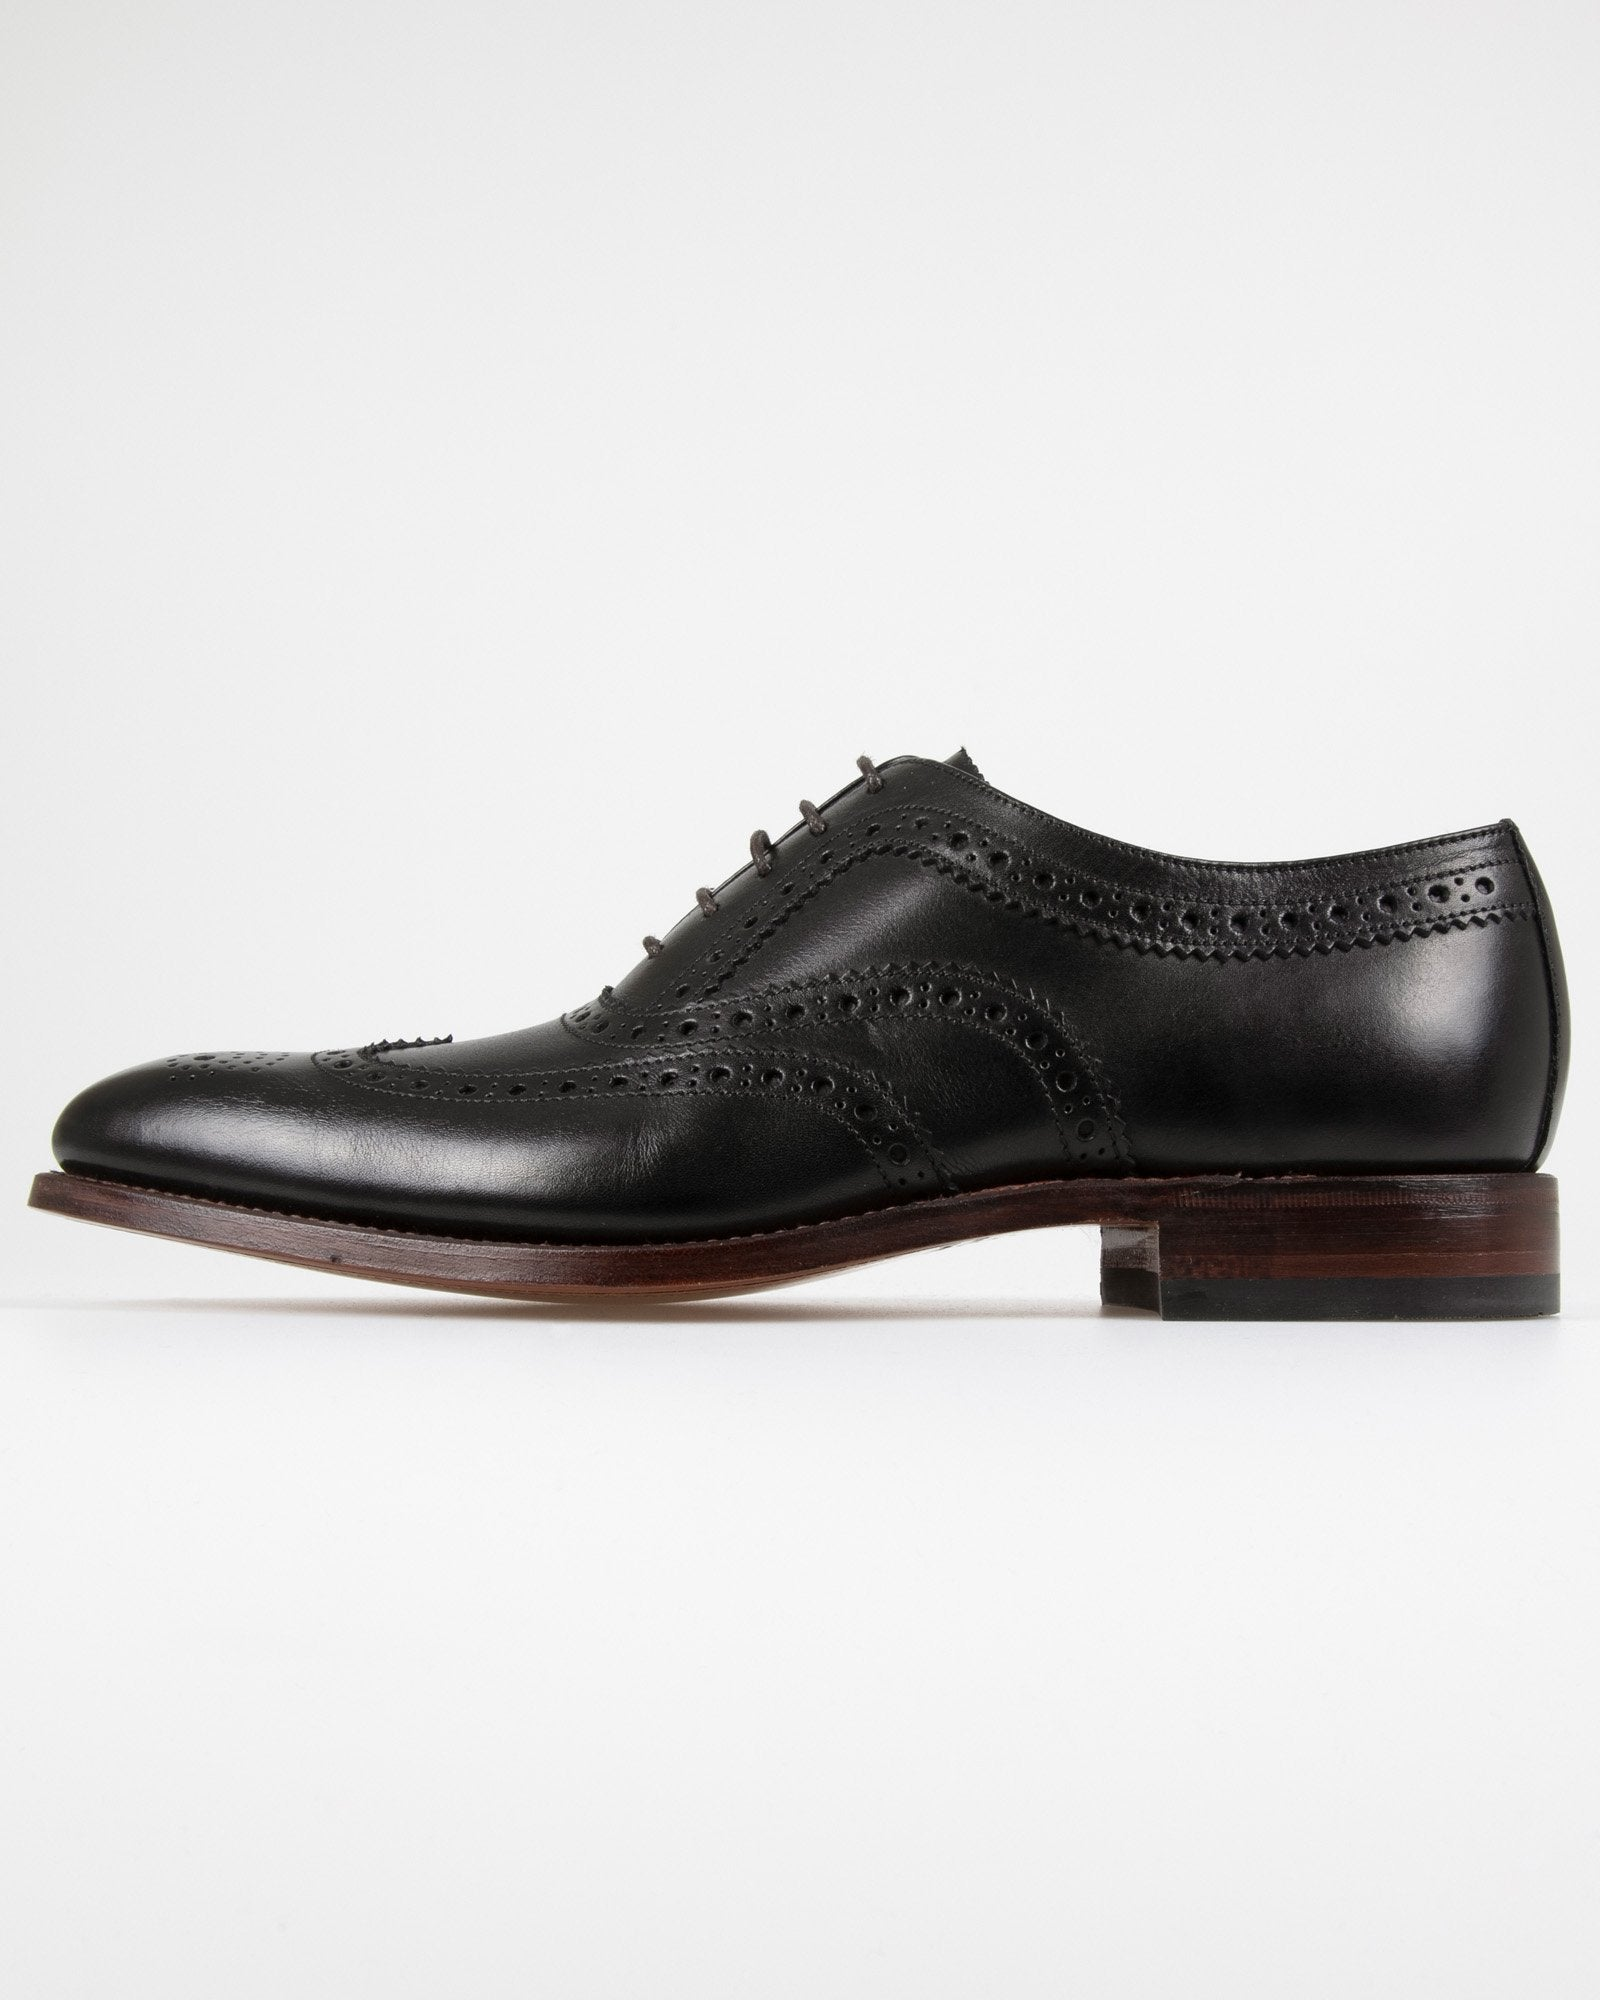 Loake Fearnley Brogue Oxford - Black UK 10 FEAB10 5050362190180 Loake Shoemakers Shoes